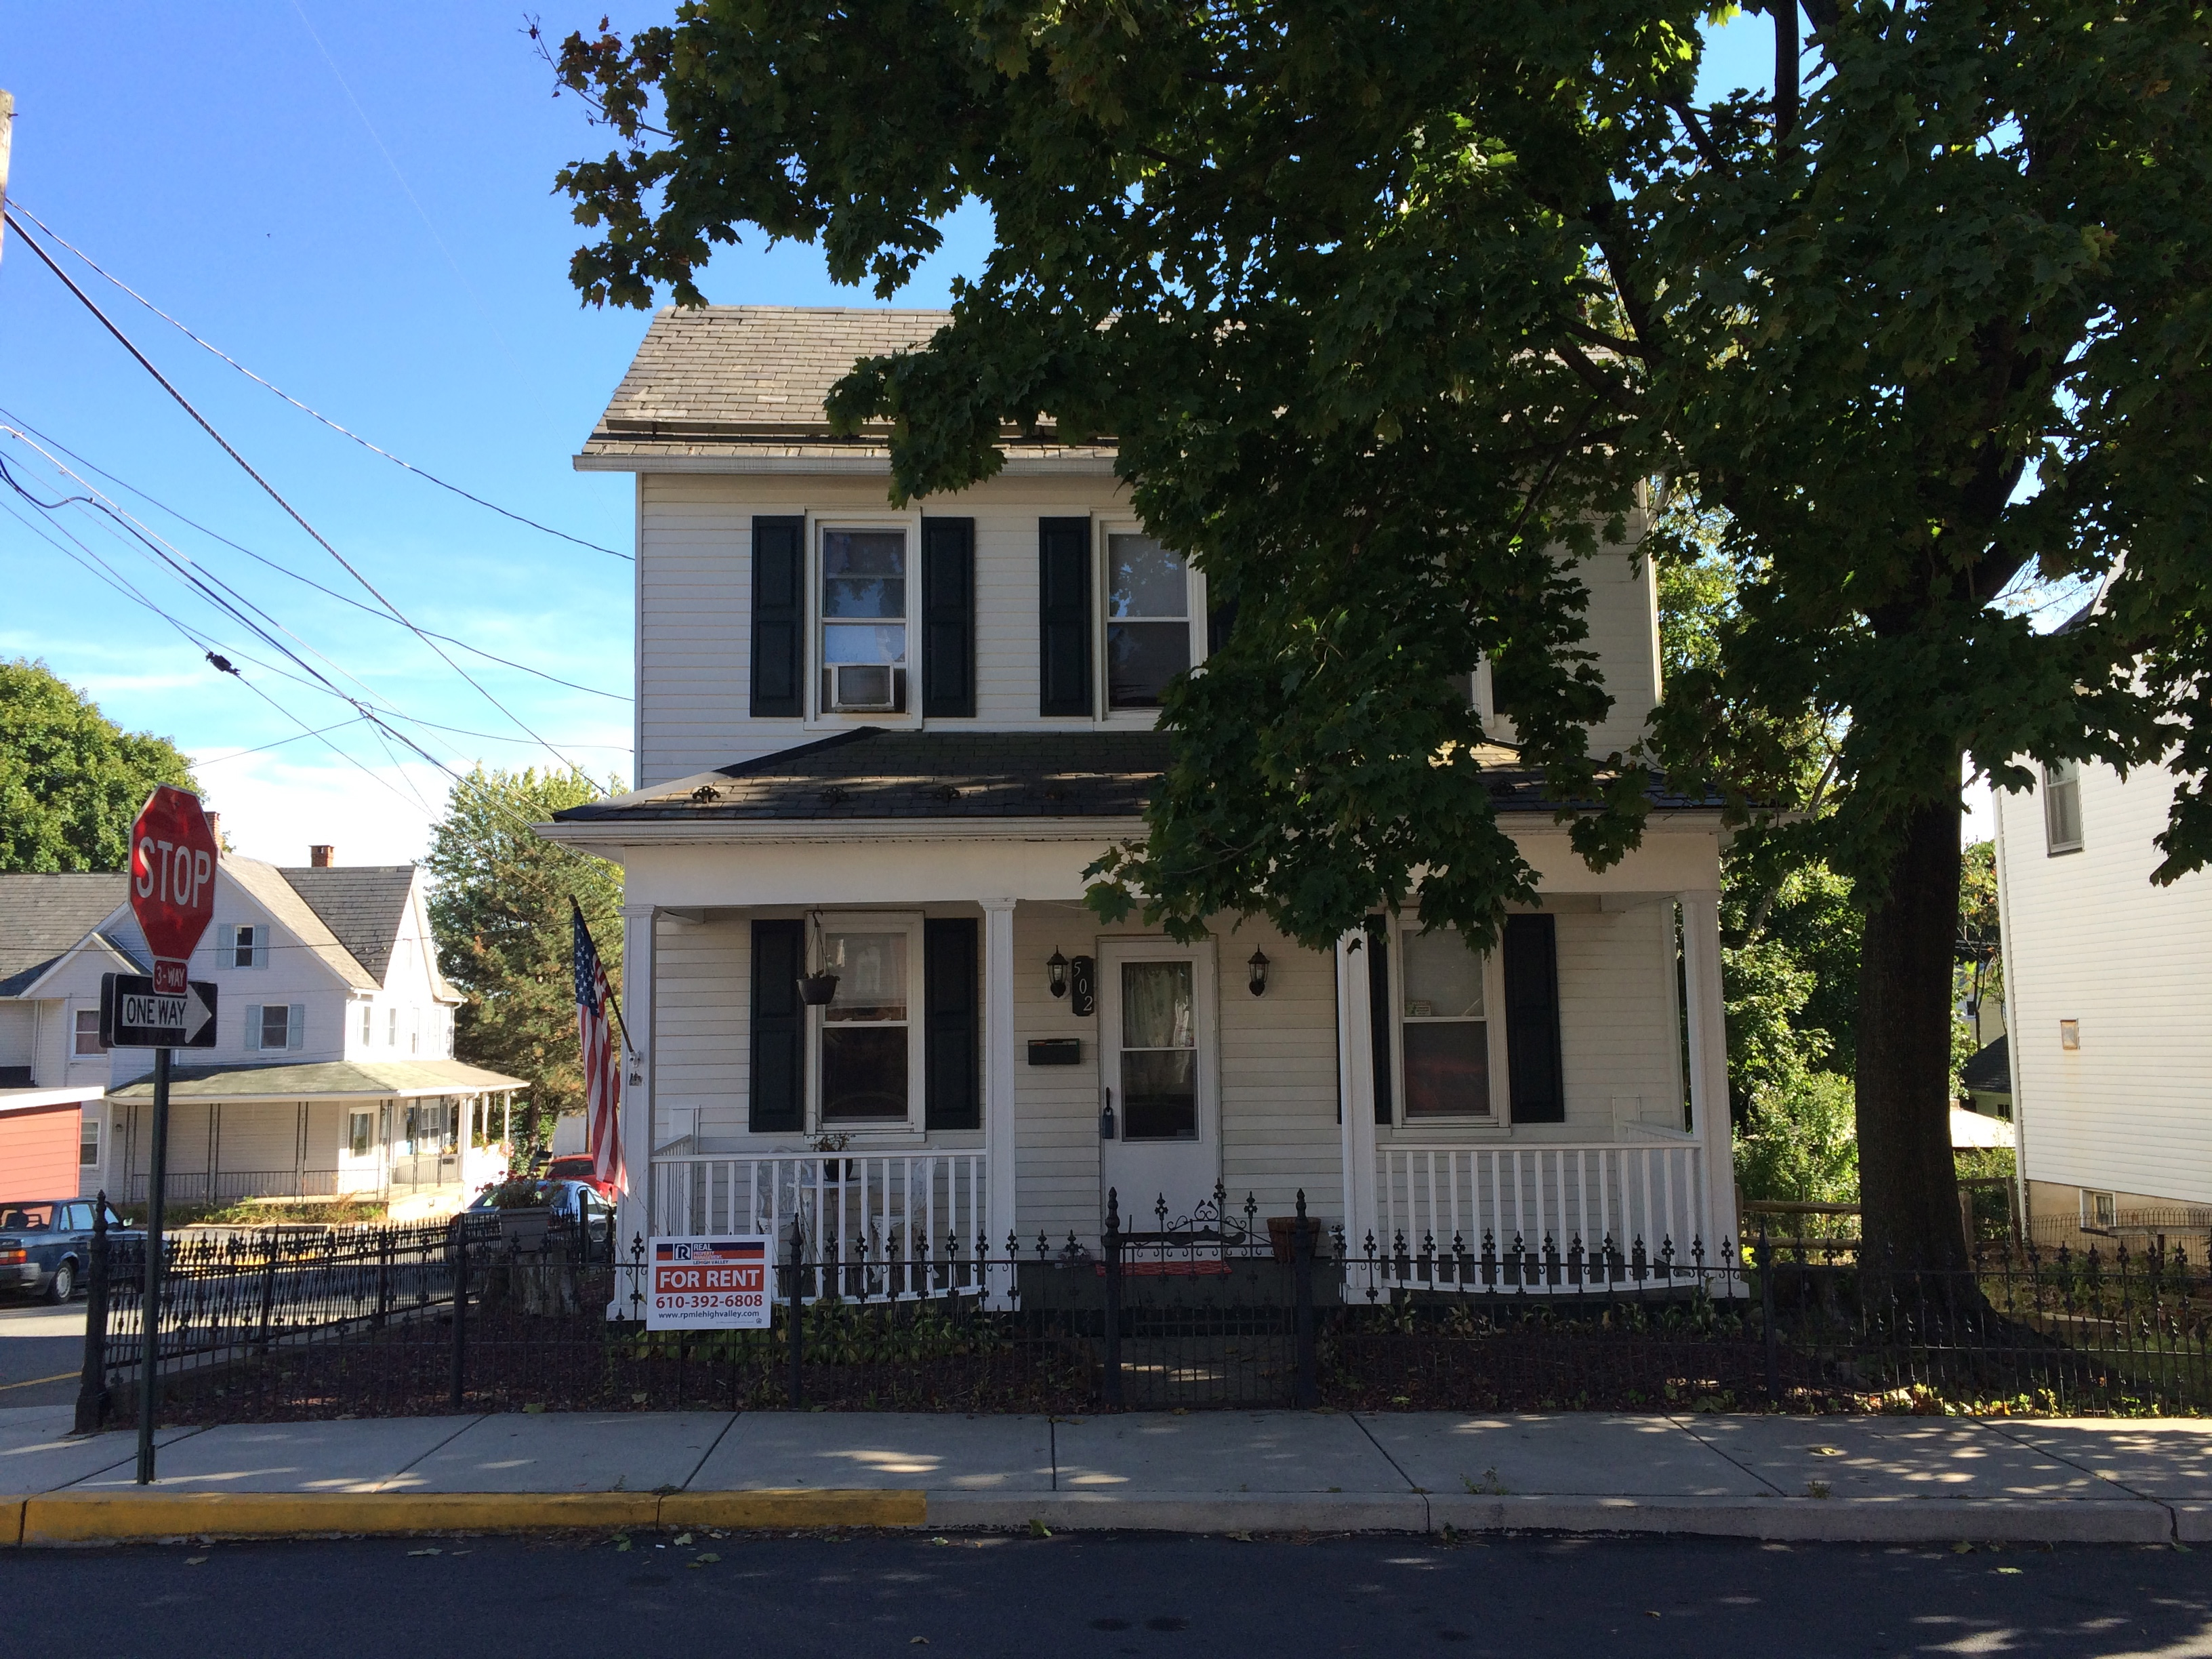 House for Rent in Pen Argyl